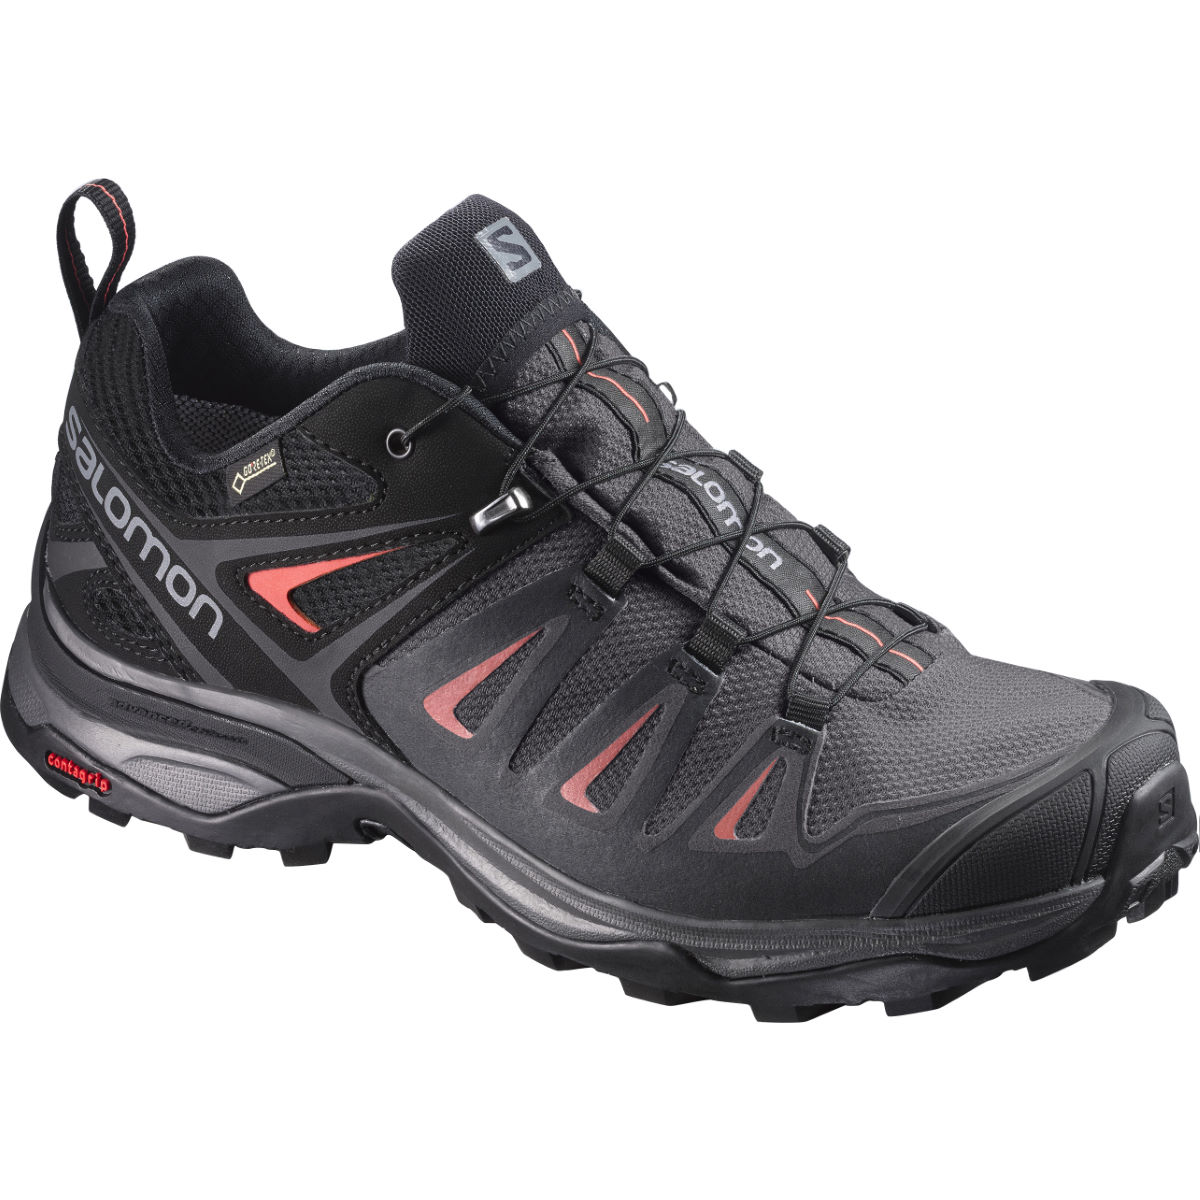 Salomon Women's X Ultra 3 Gore-Tex® Hiking Shoes   Shoes